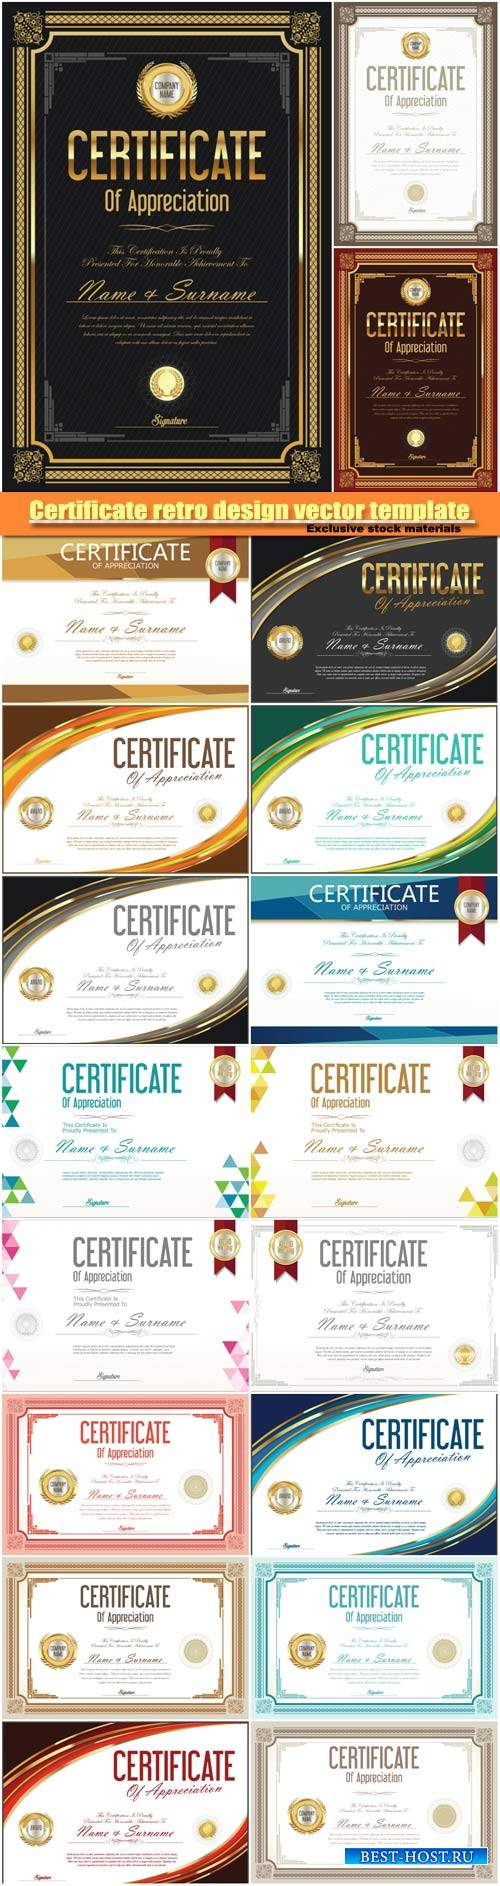 Certificate retro design vector template